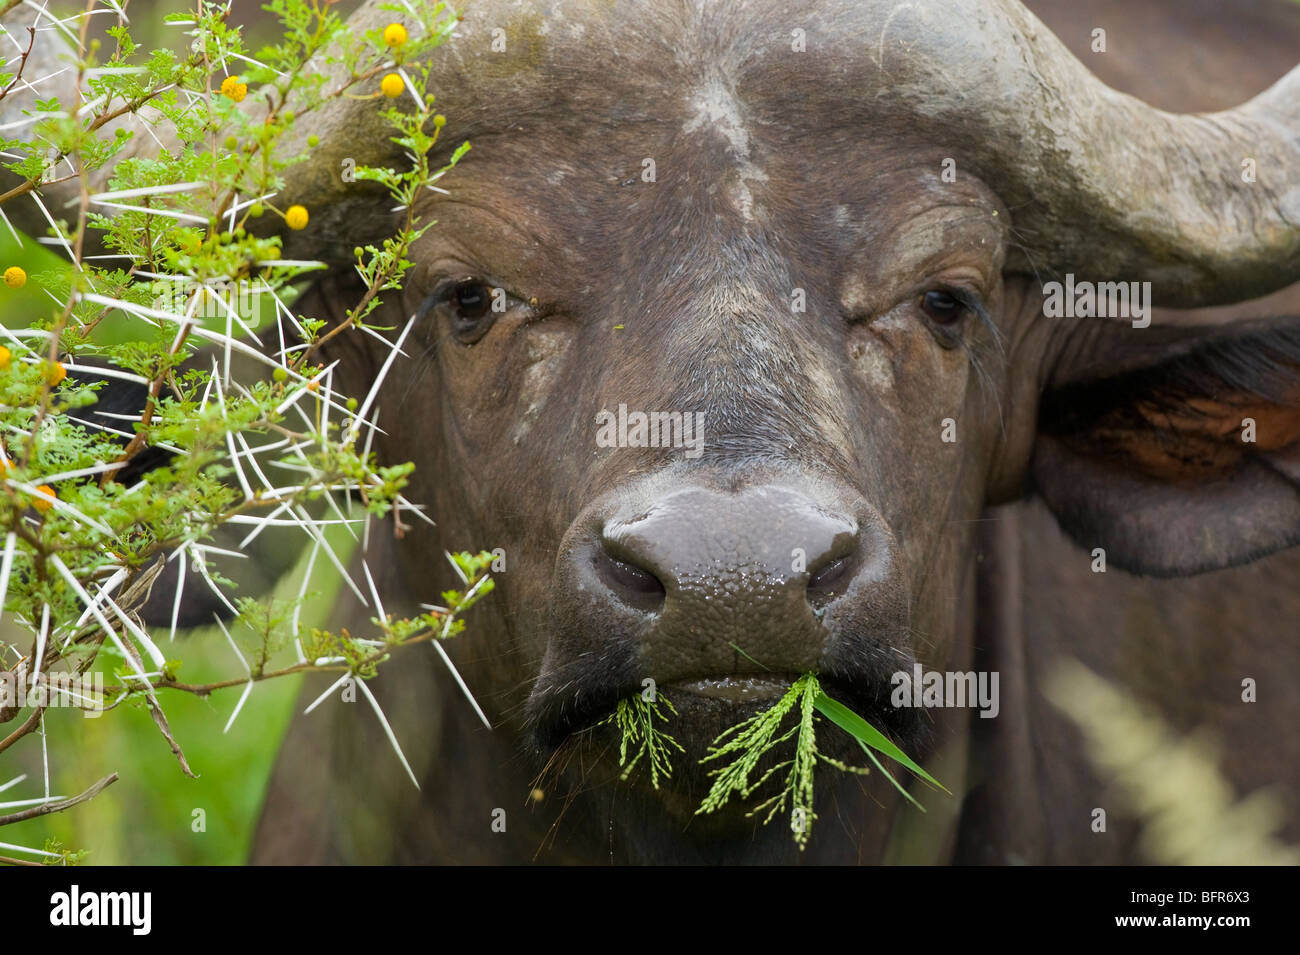 Portrait of a Buffalo feeding on leaves of a thorn tree - Stock Image